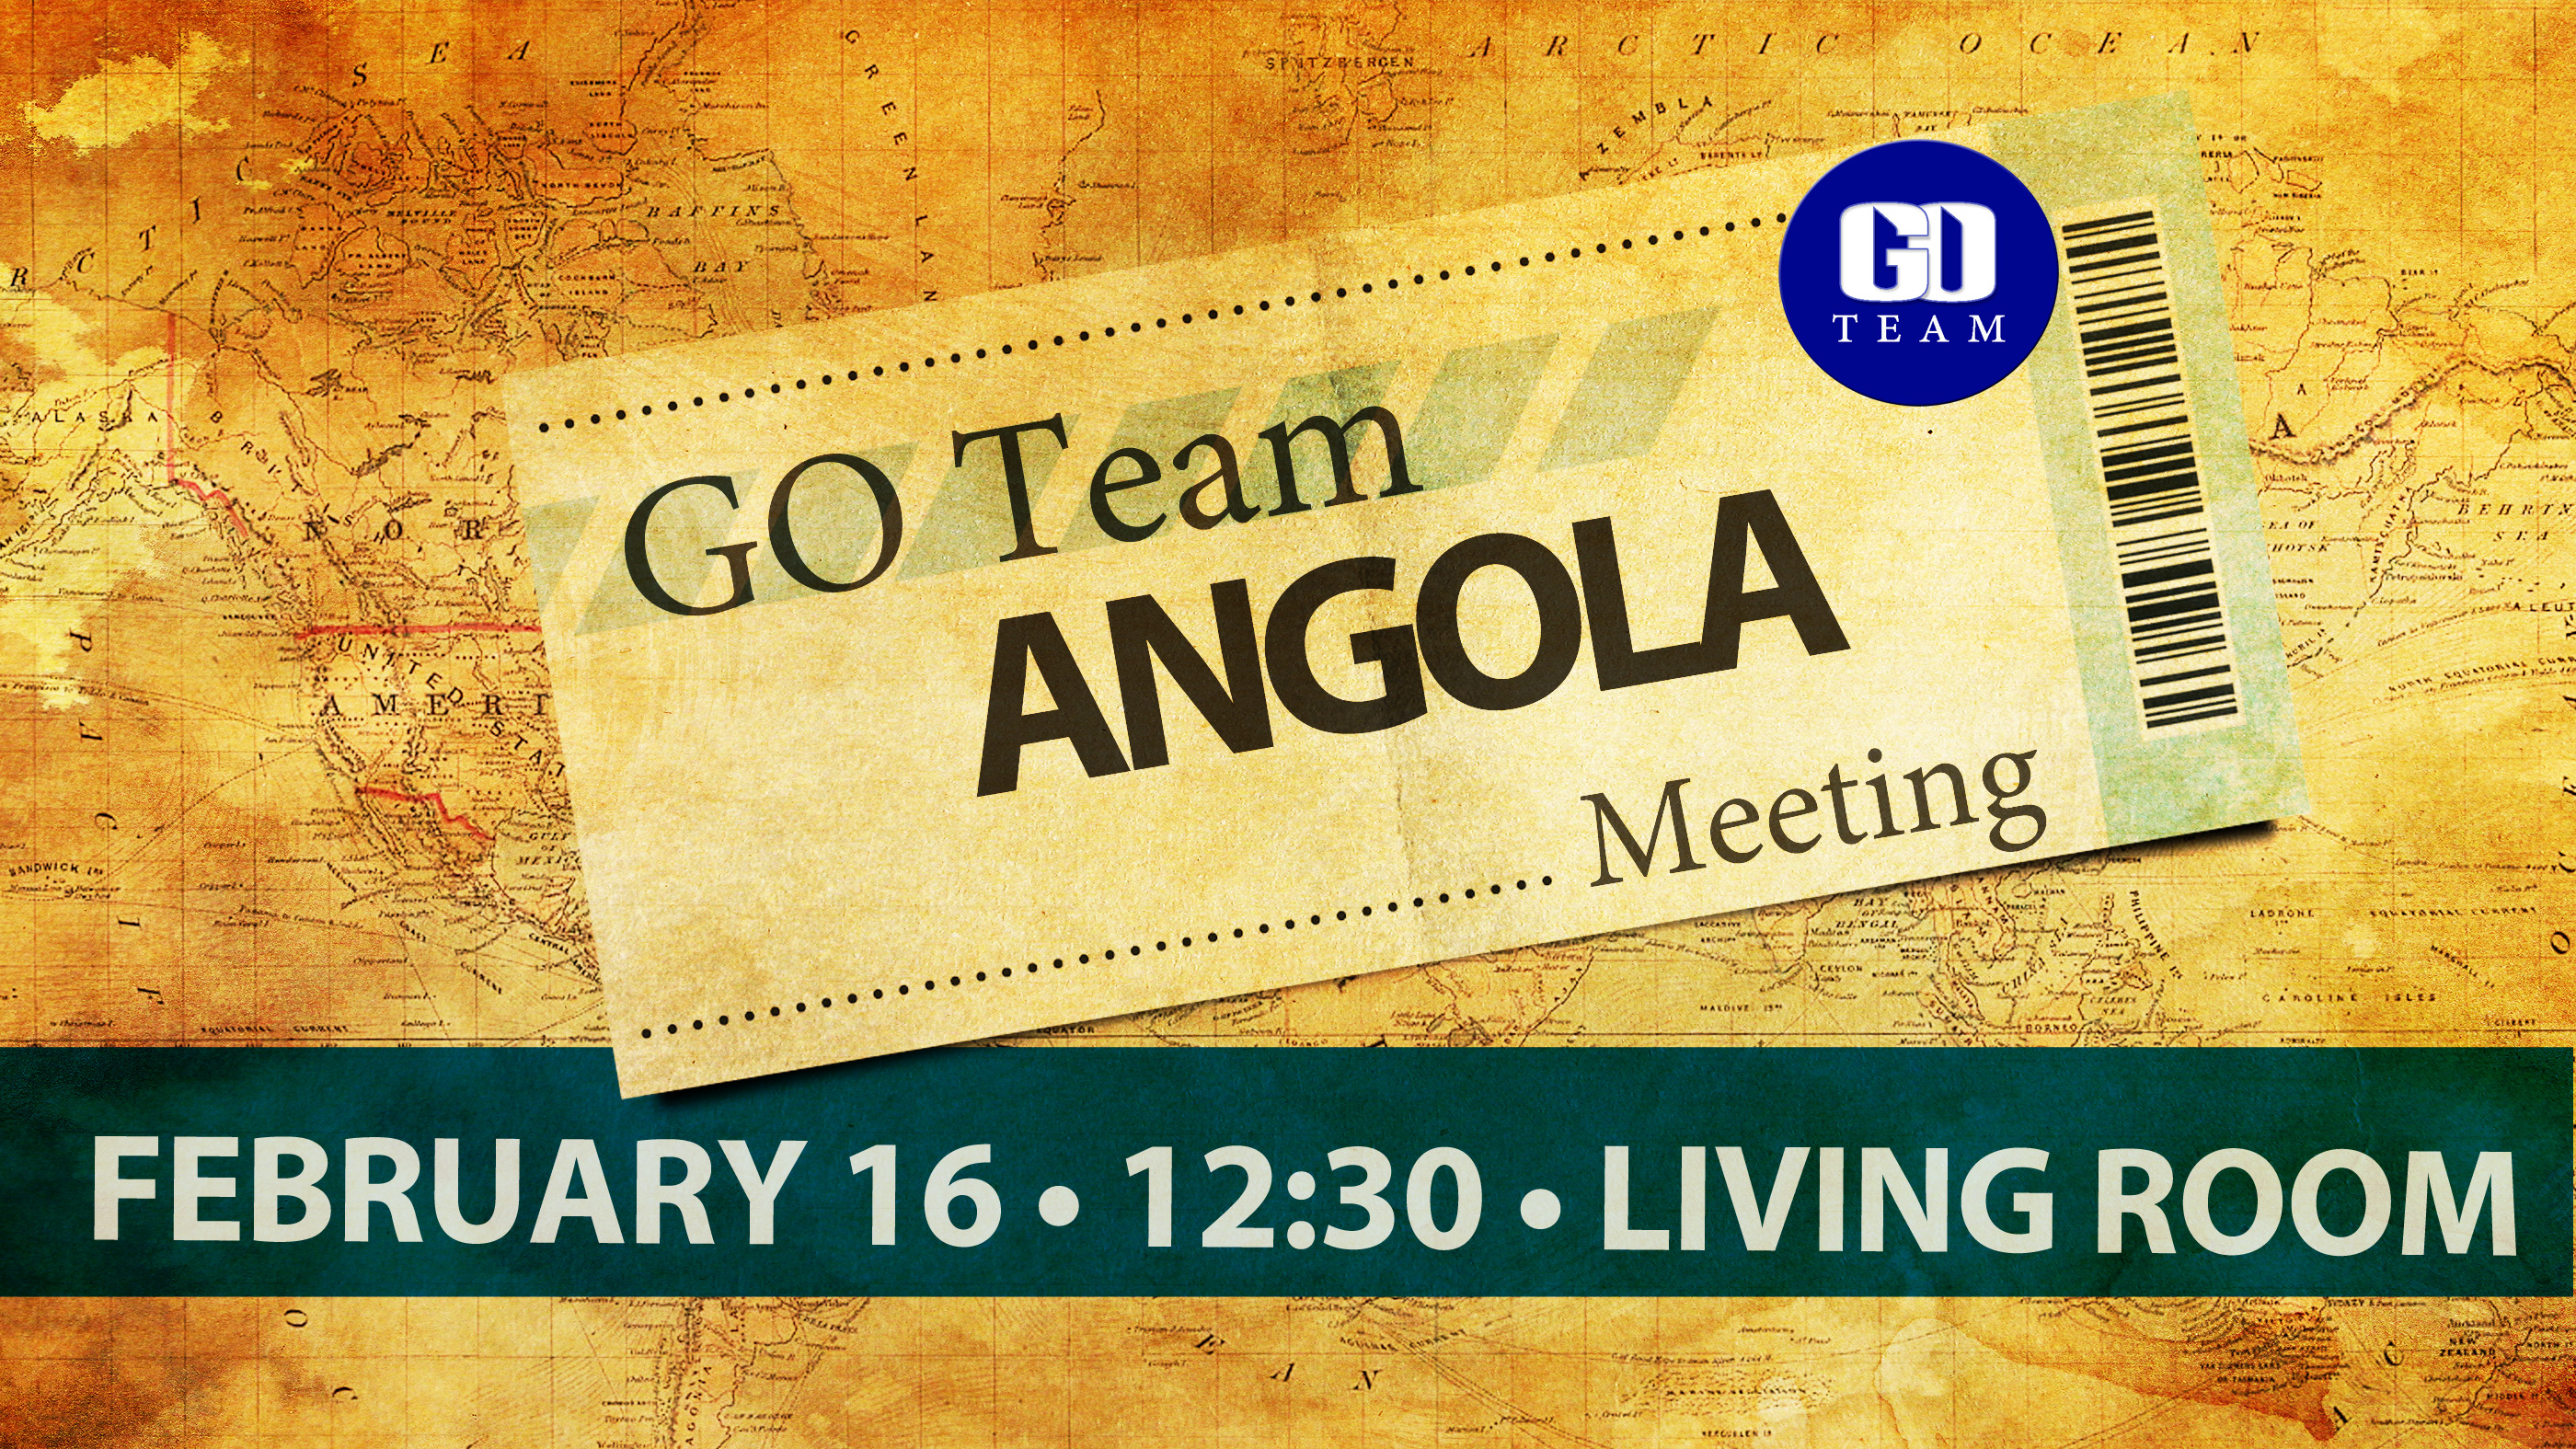 Angola GO Team Meeting